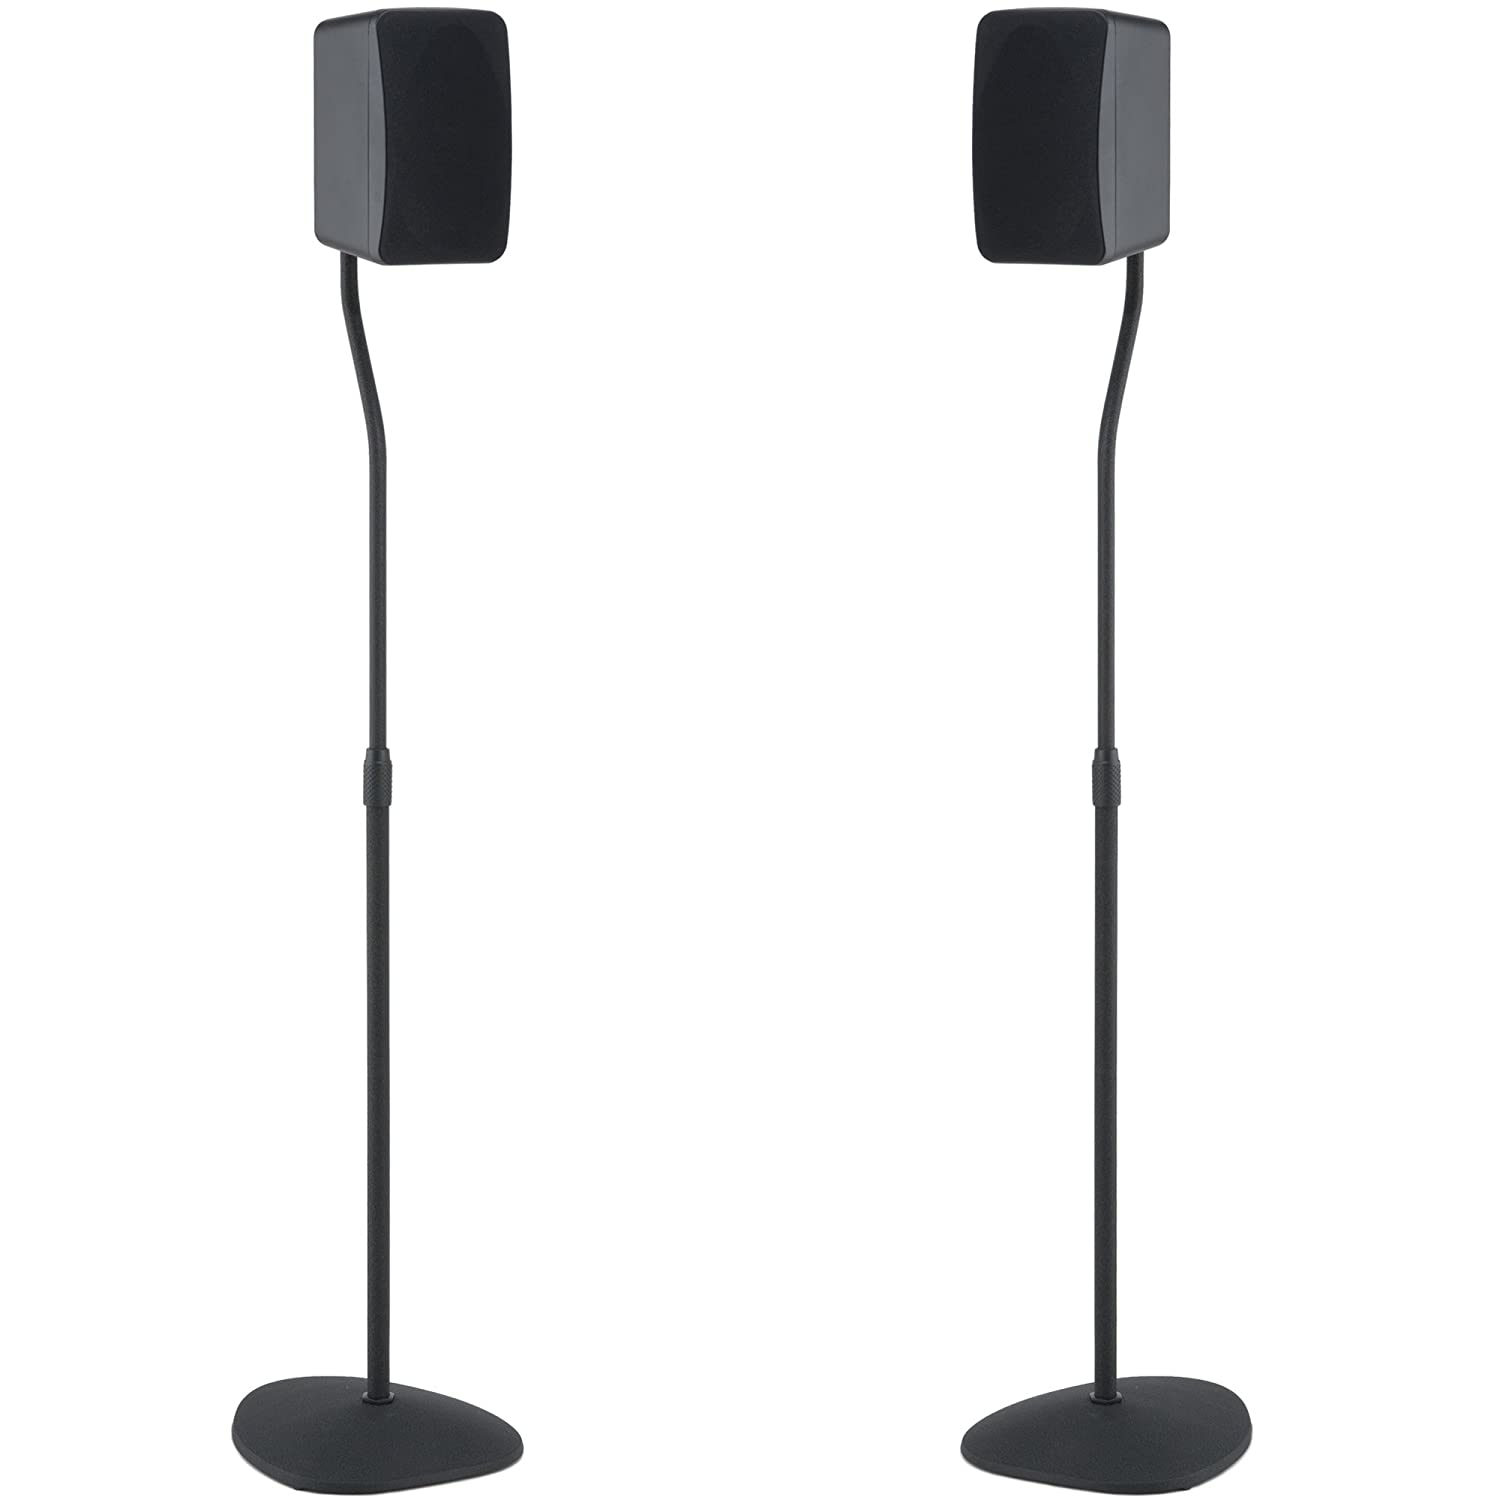 SANUS HTBS Adjustable Height Speaker Stand